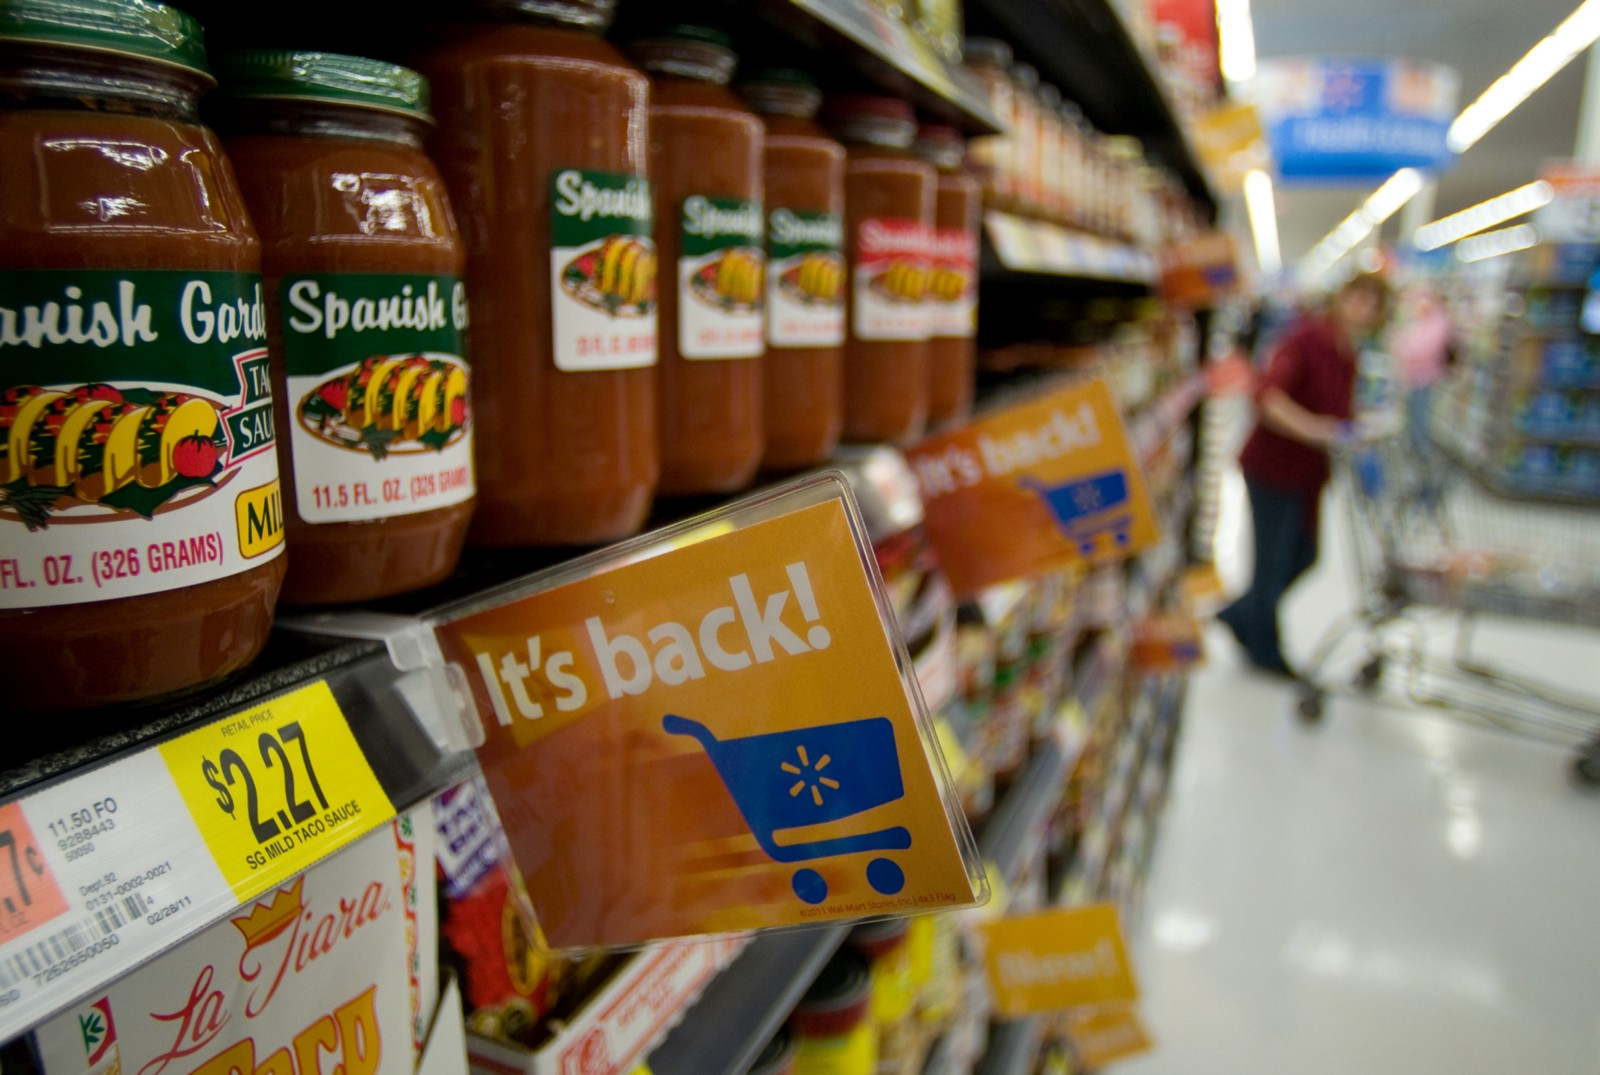 wal mart success in marketing Walmart's marketing mix is a key success factor in this retail business, although the company can focus more on the place/distribution component of the marketing mix to strengthen its global position.